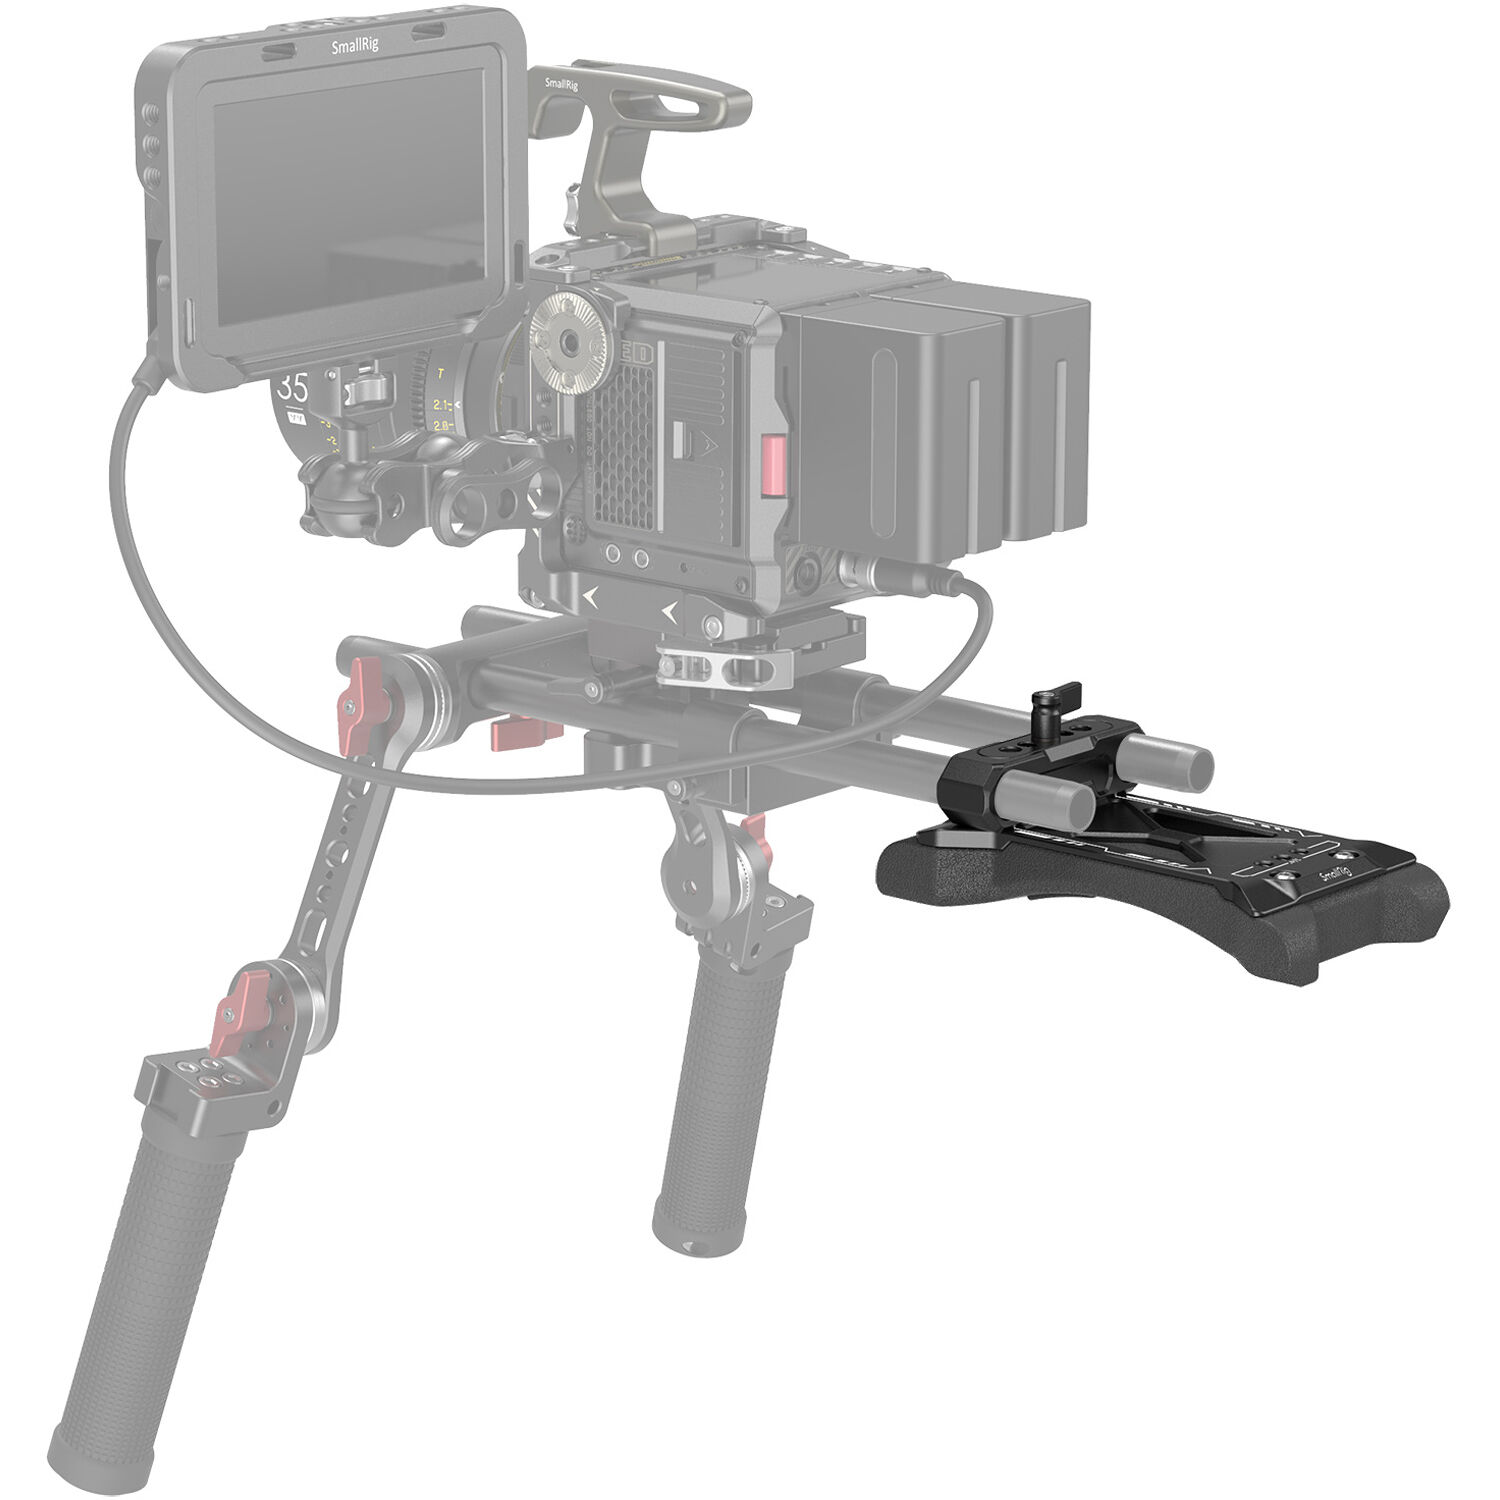 SMALLRIG Universal Basic Camera Shoulder Pad with 15mm LWS Rod Clamp for DSLR 2894 Mirrorless and Small Camera